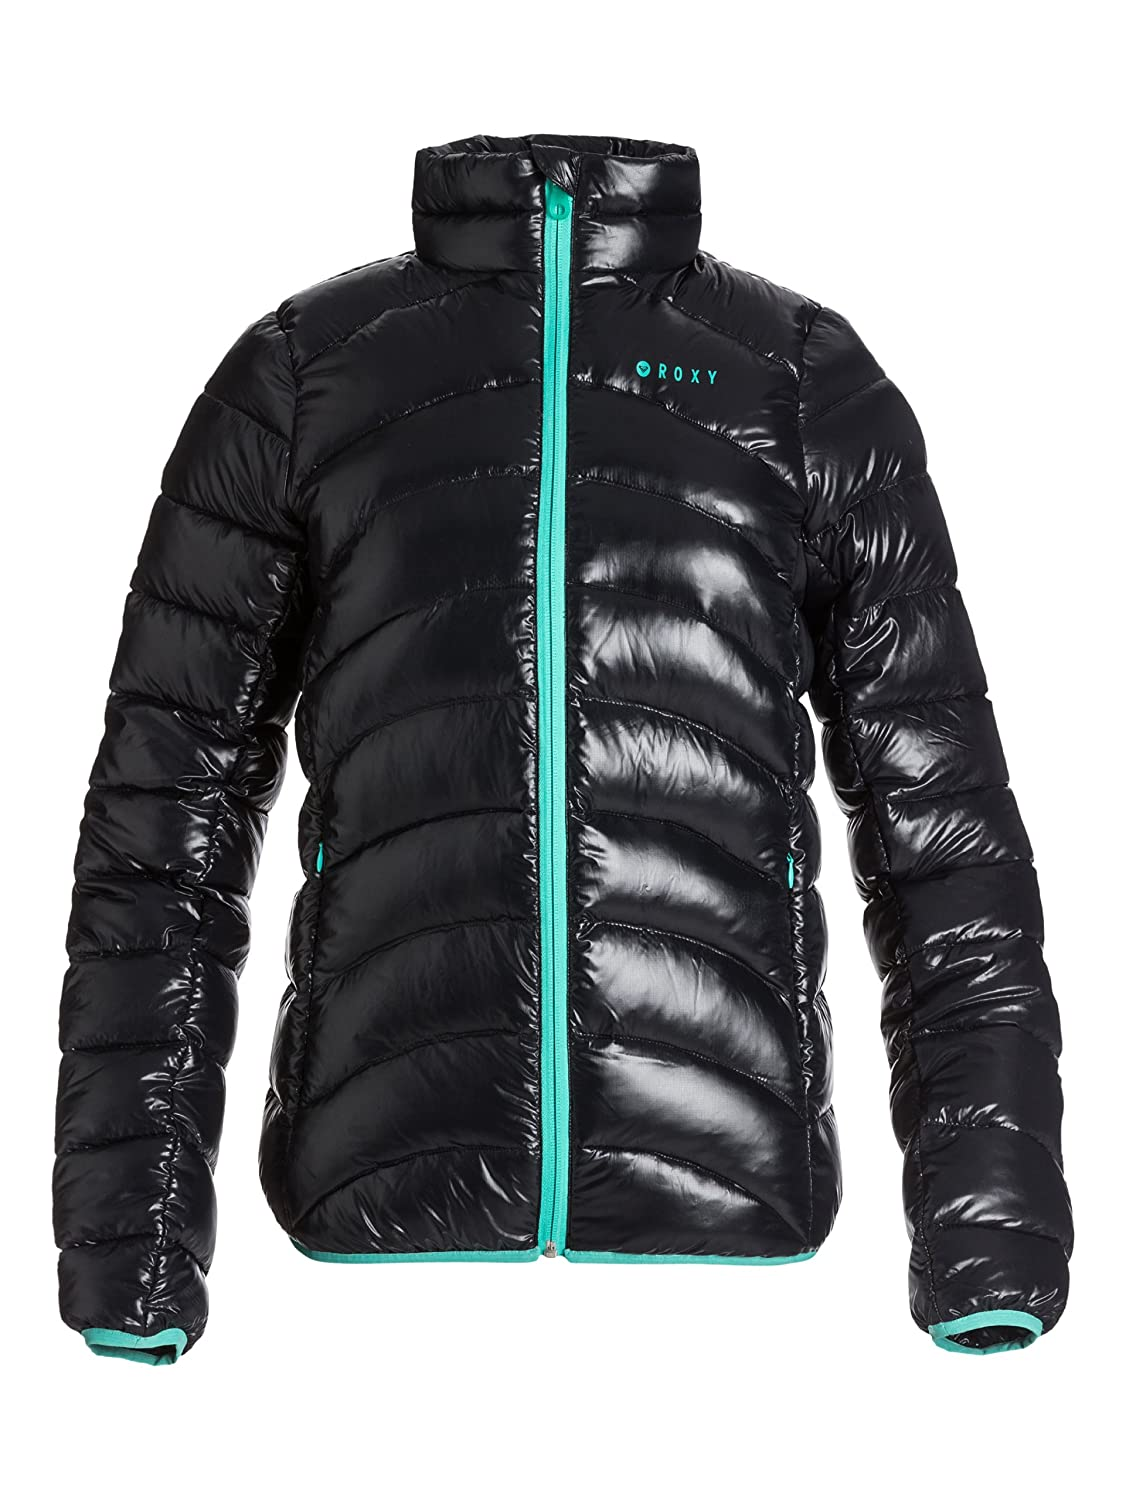 Roxy Damen Snowboardjacke Cloud Jk